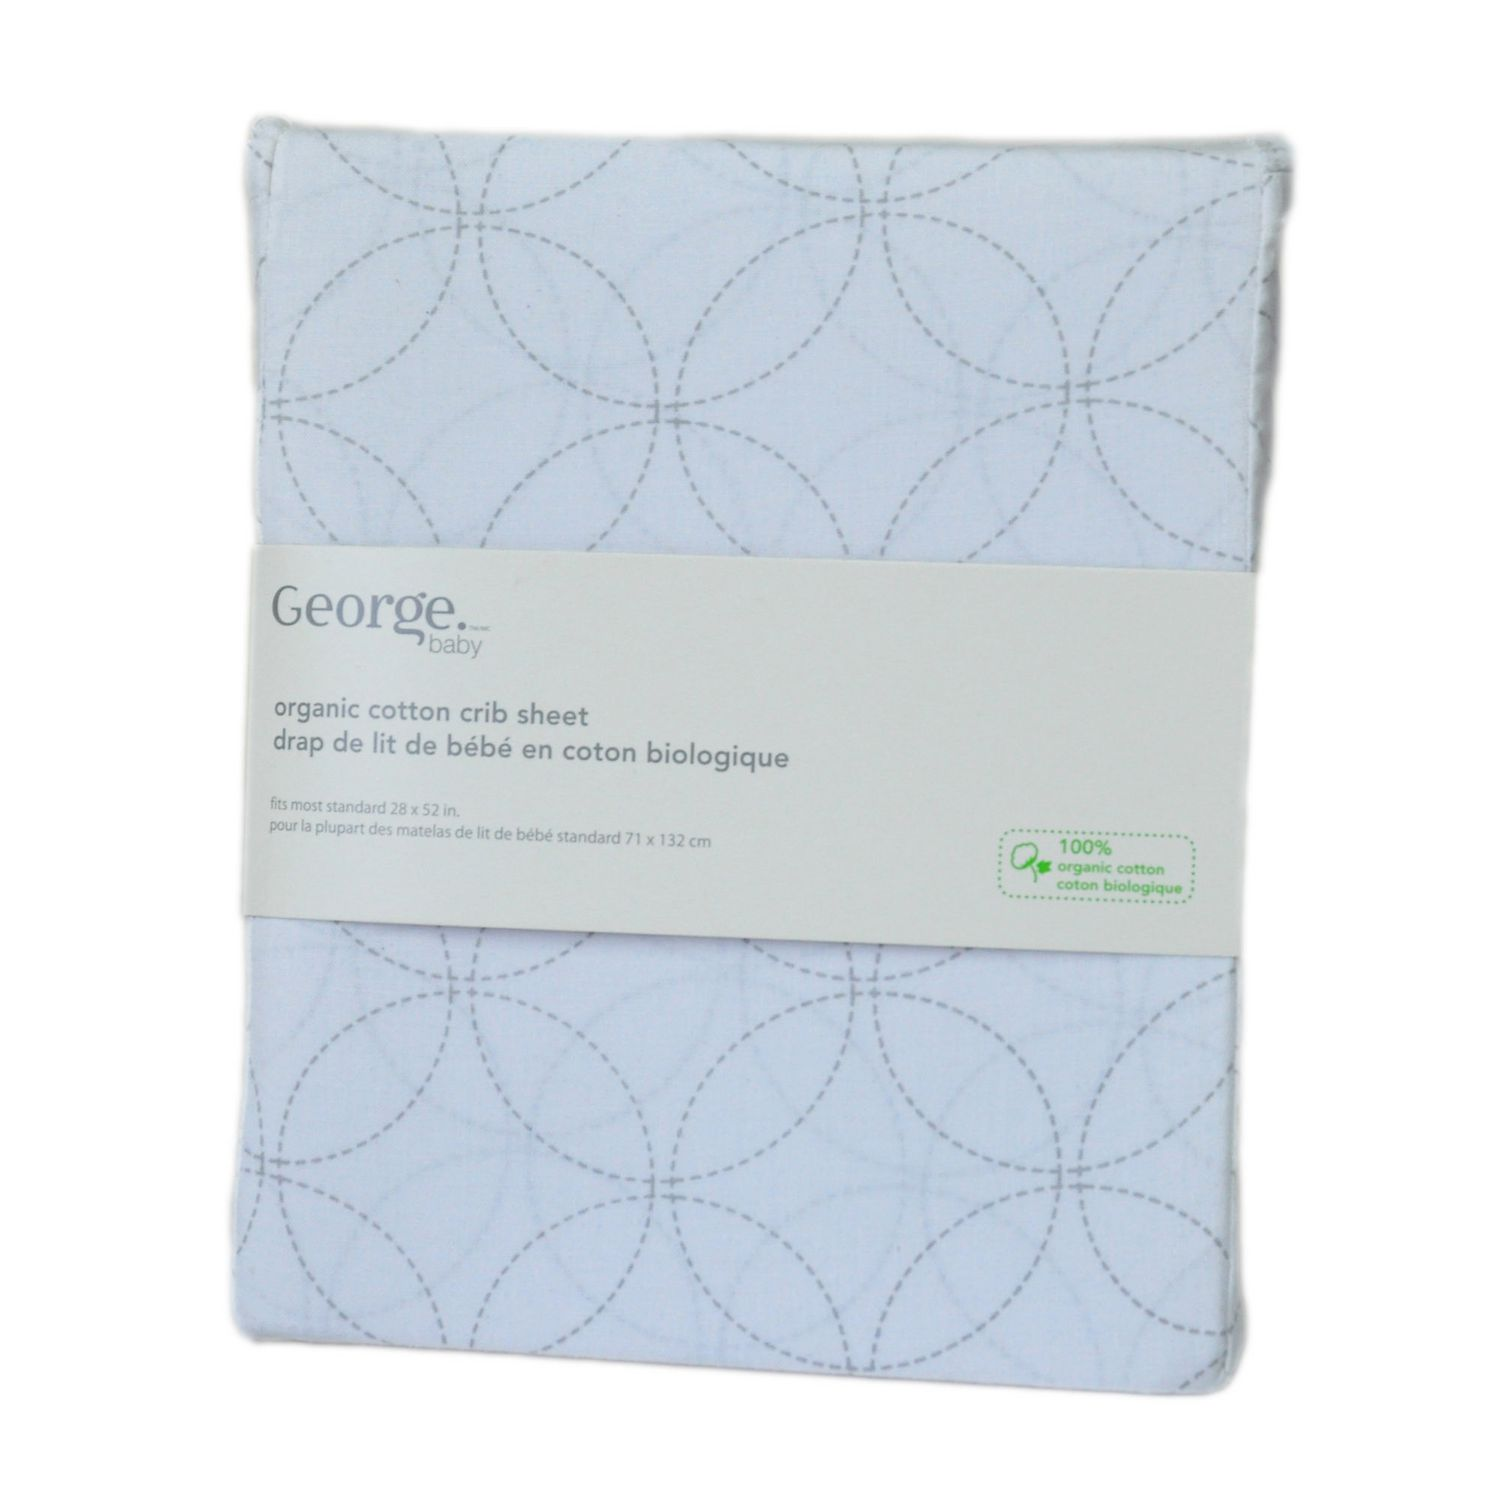 Used crib for sale ottawa - George Baby Organic Cotton Crib Sheet